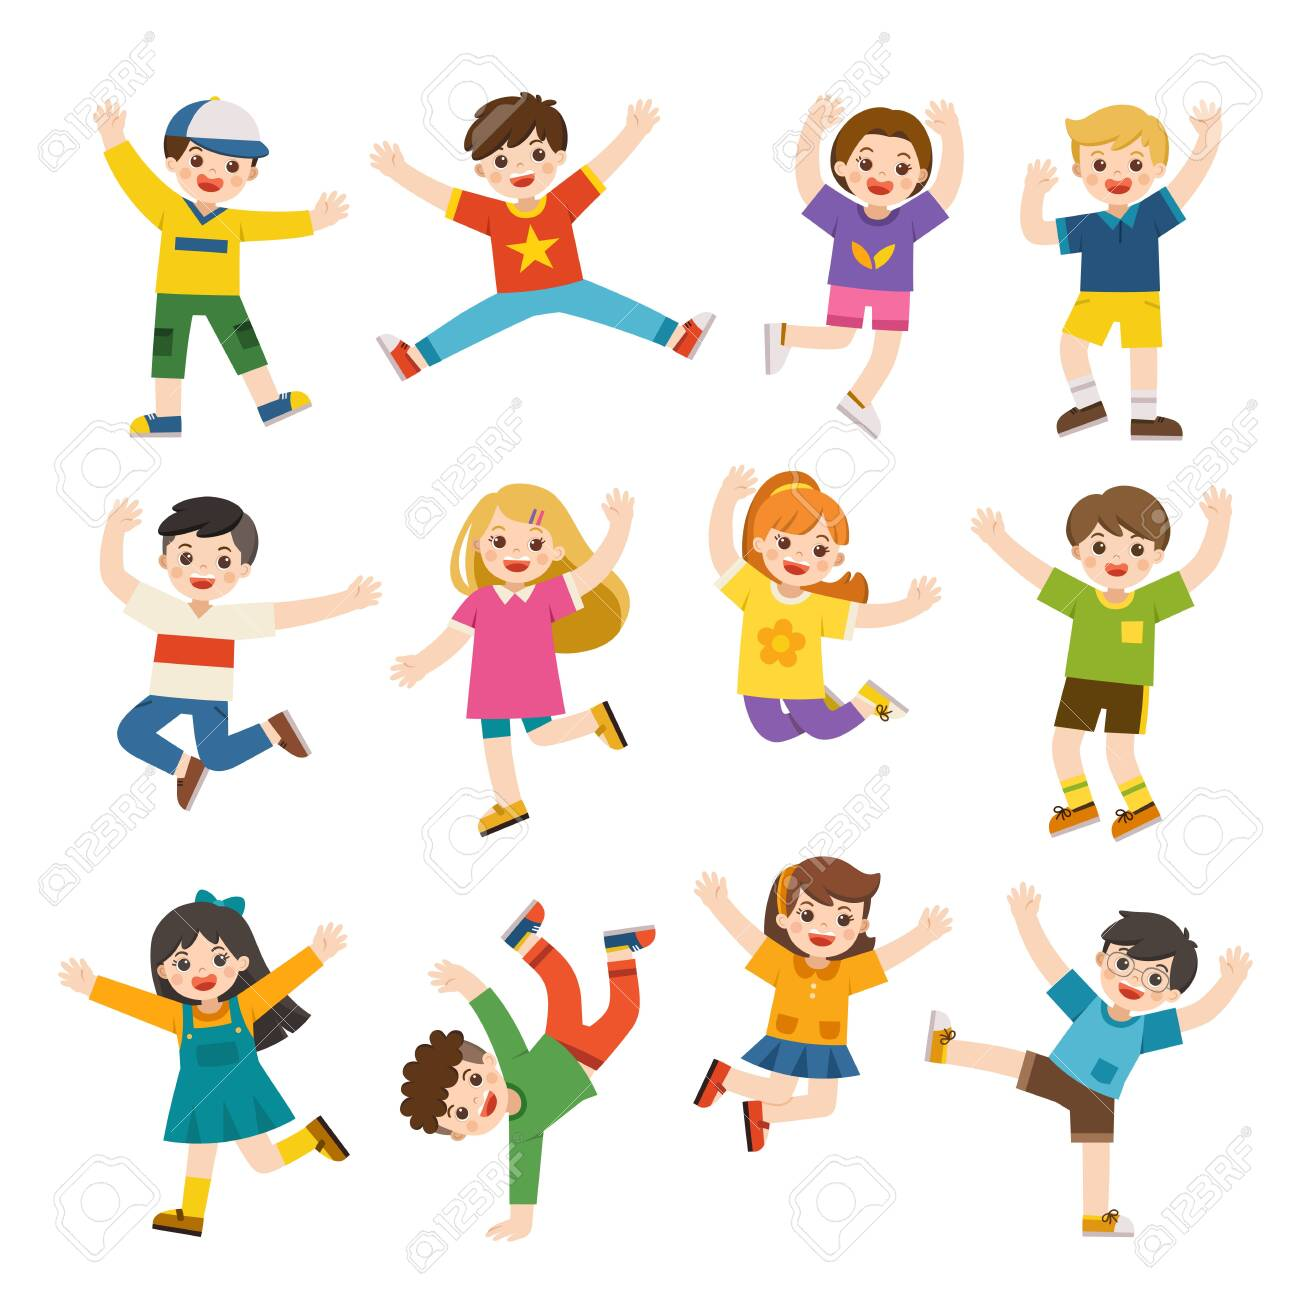 Children's activities. Happy kids jumping together on the background. Boys and girls are playing together happily. Vector illustration. - 123971609